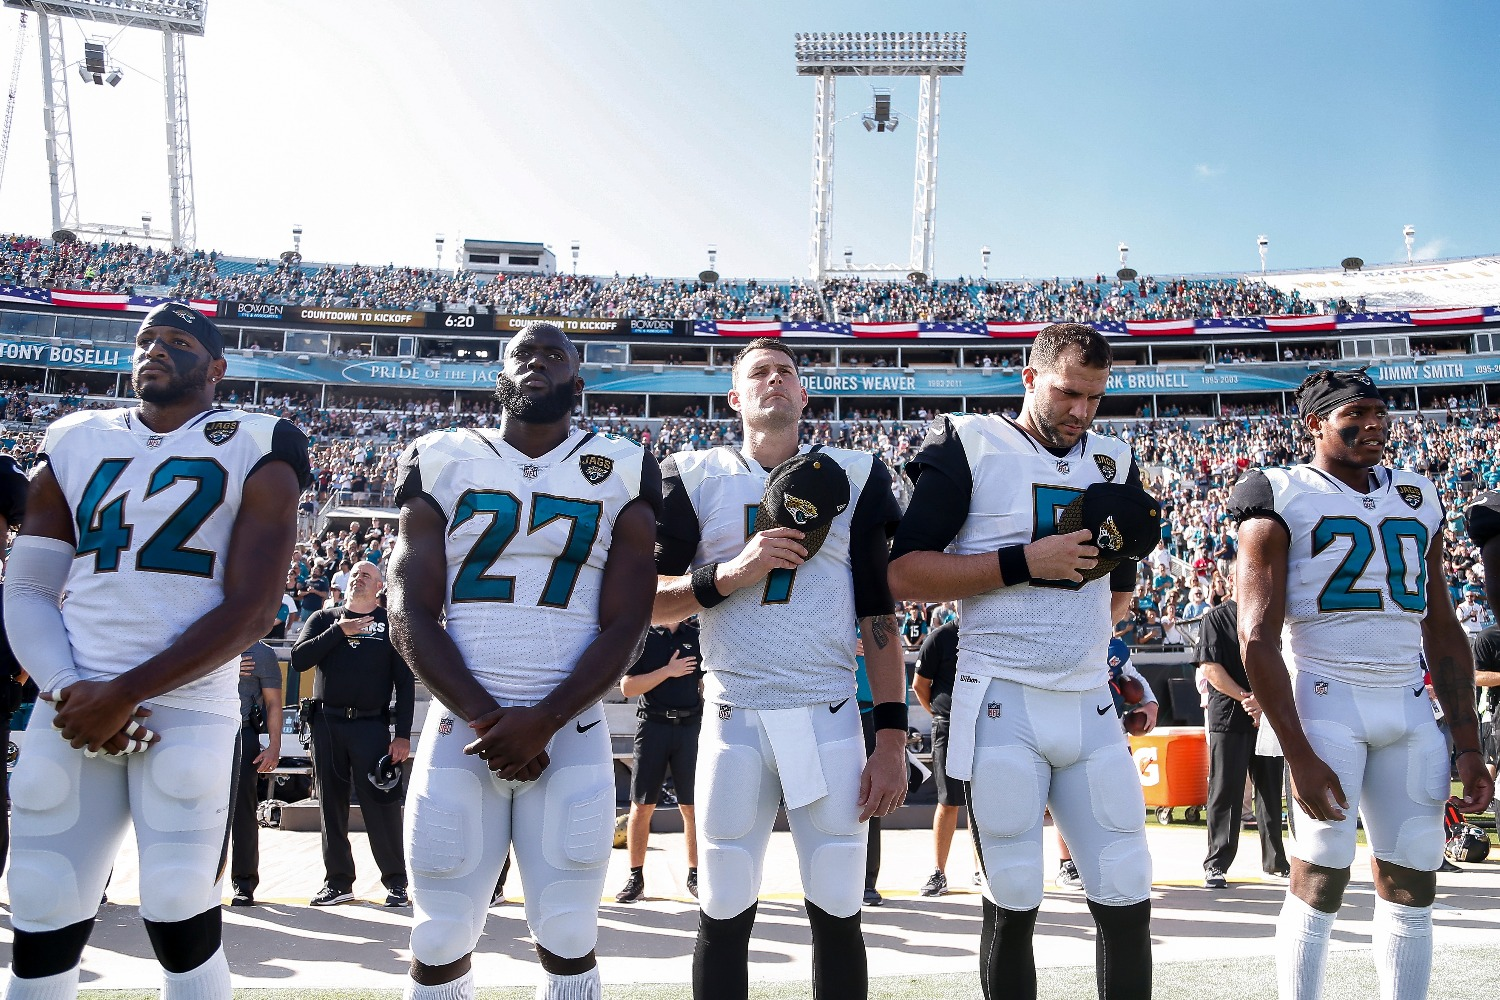 Leonard Fournette's release certifies the Jaguars as the NFL's most embarrassing franchise, especially with their blown NFL draft picks.